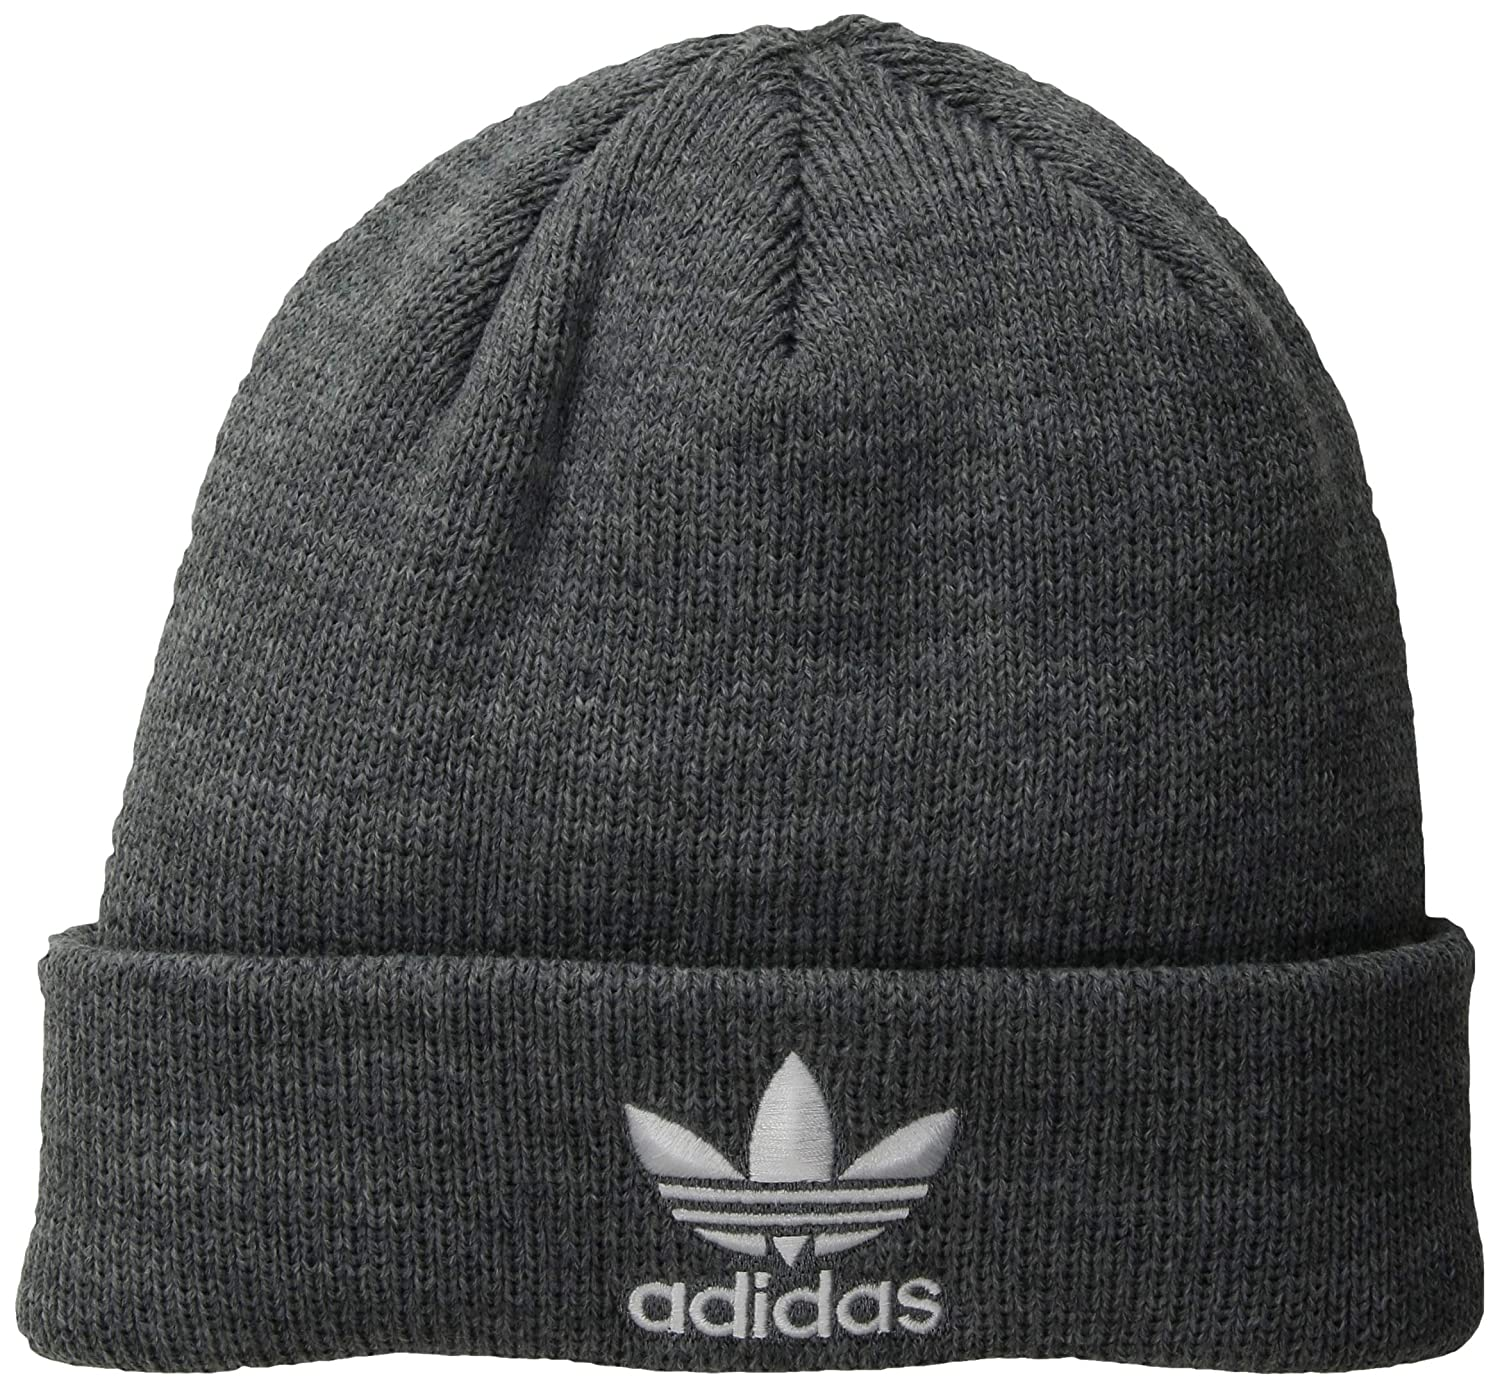 85503527b adidas Originals Men's Trefoil Beanie